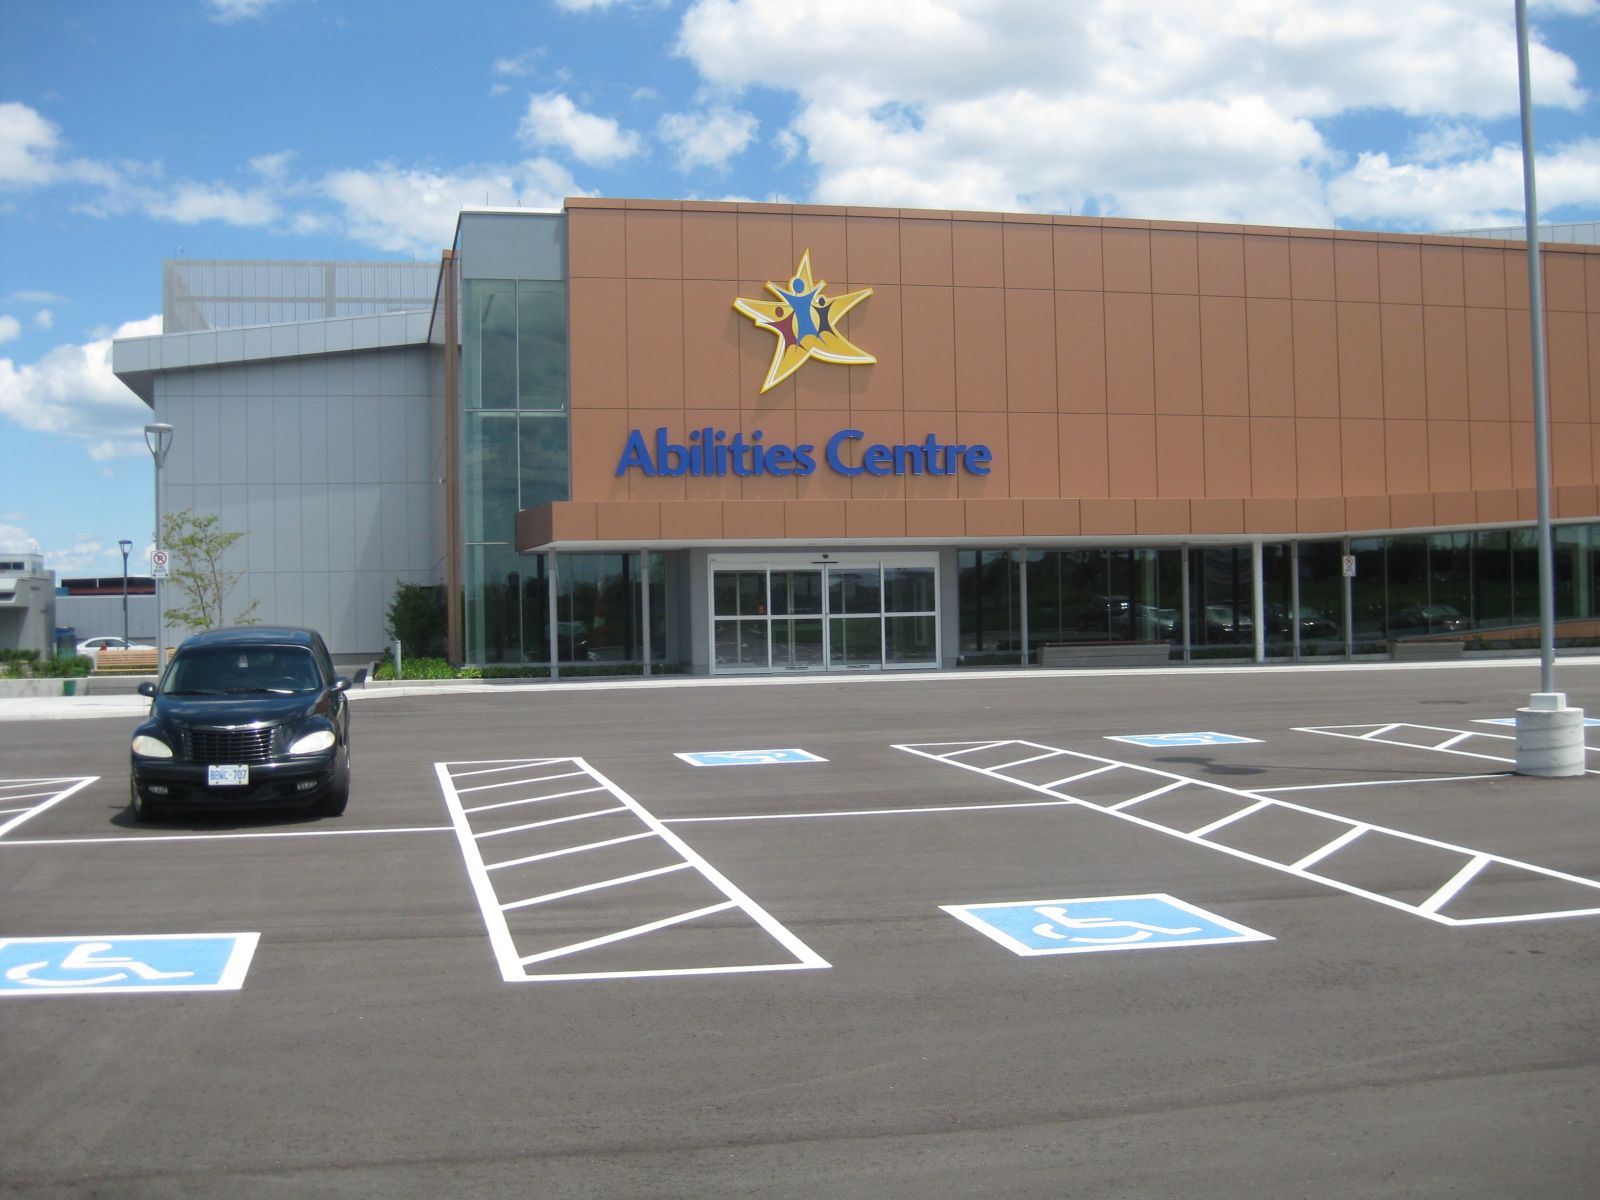 Photo of exterior of Abilities Centre, Whitby Ontario.